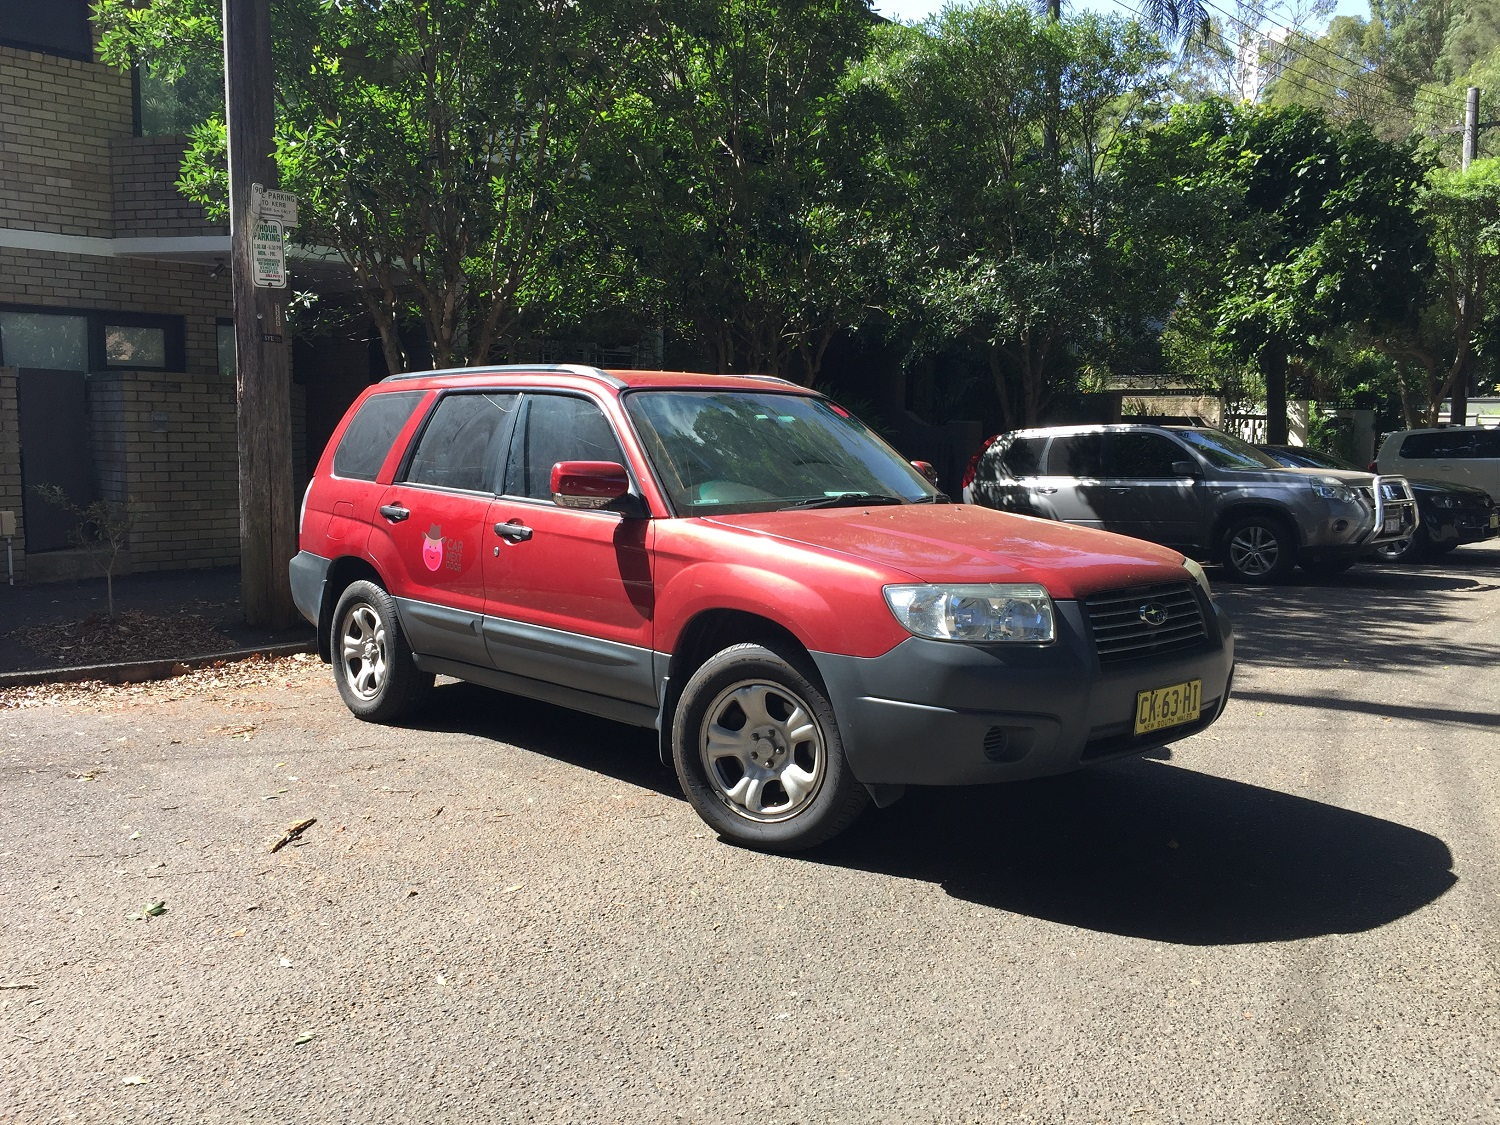 Picture of Jordan's 2007 Subaru Forester